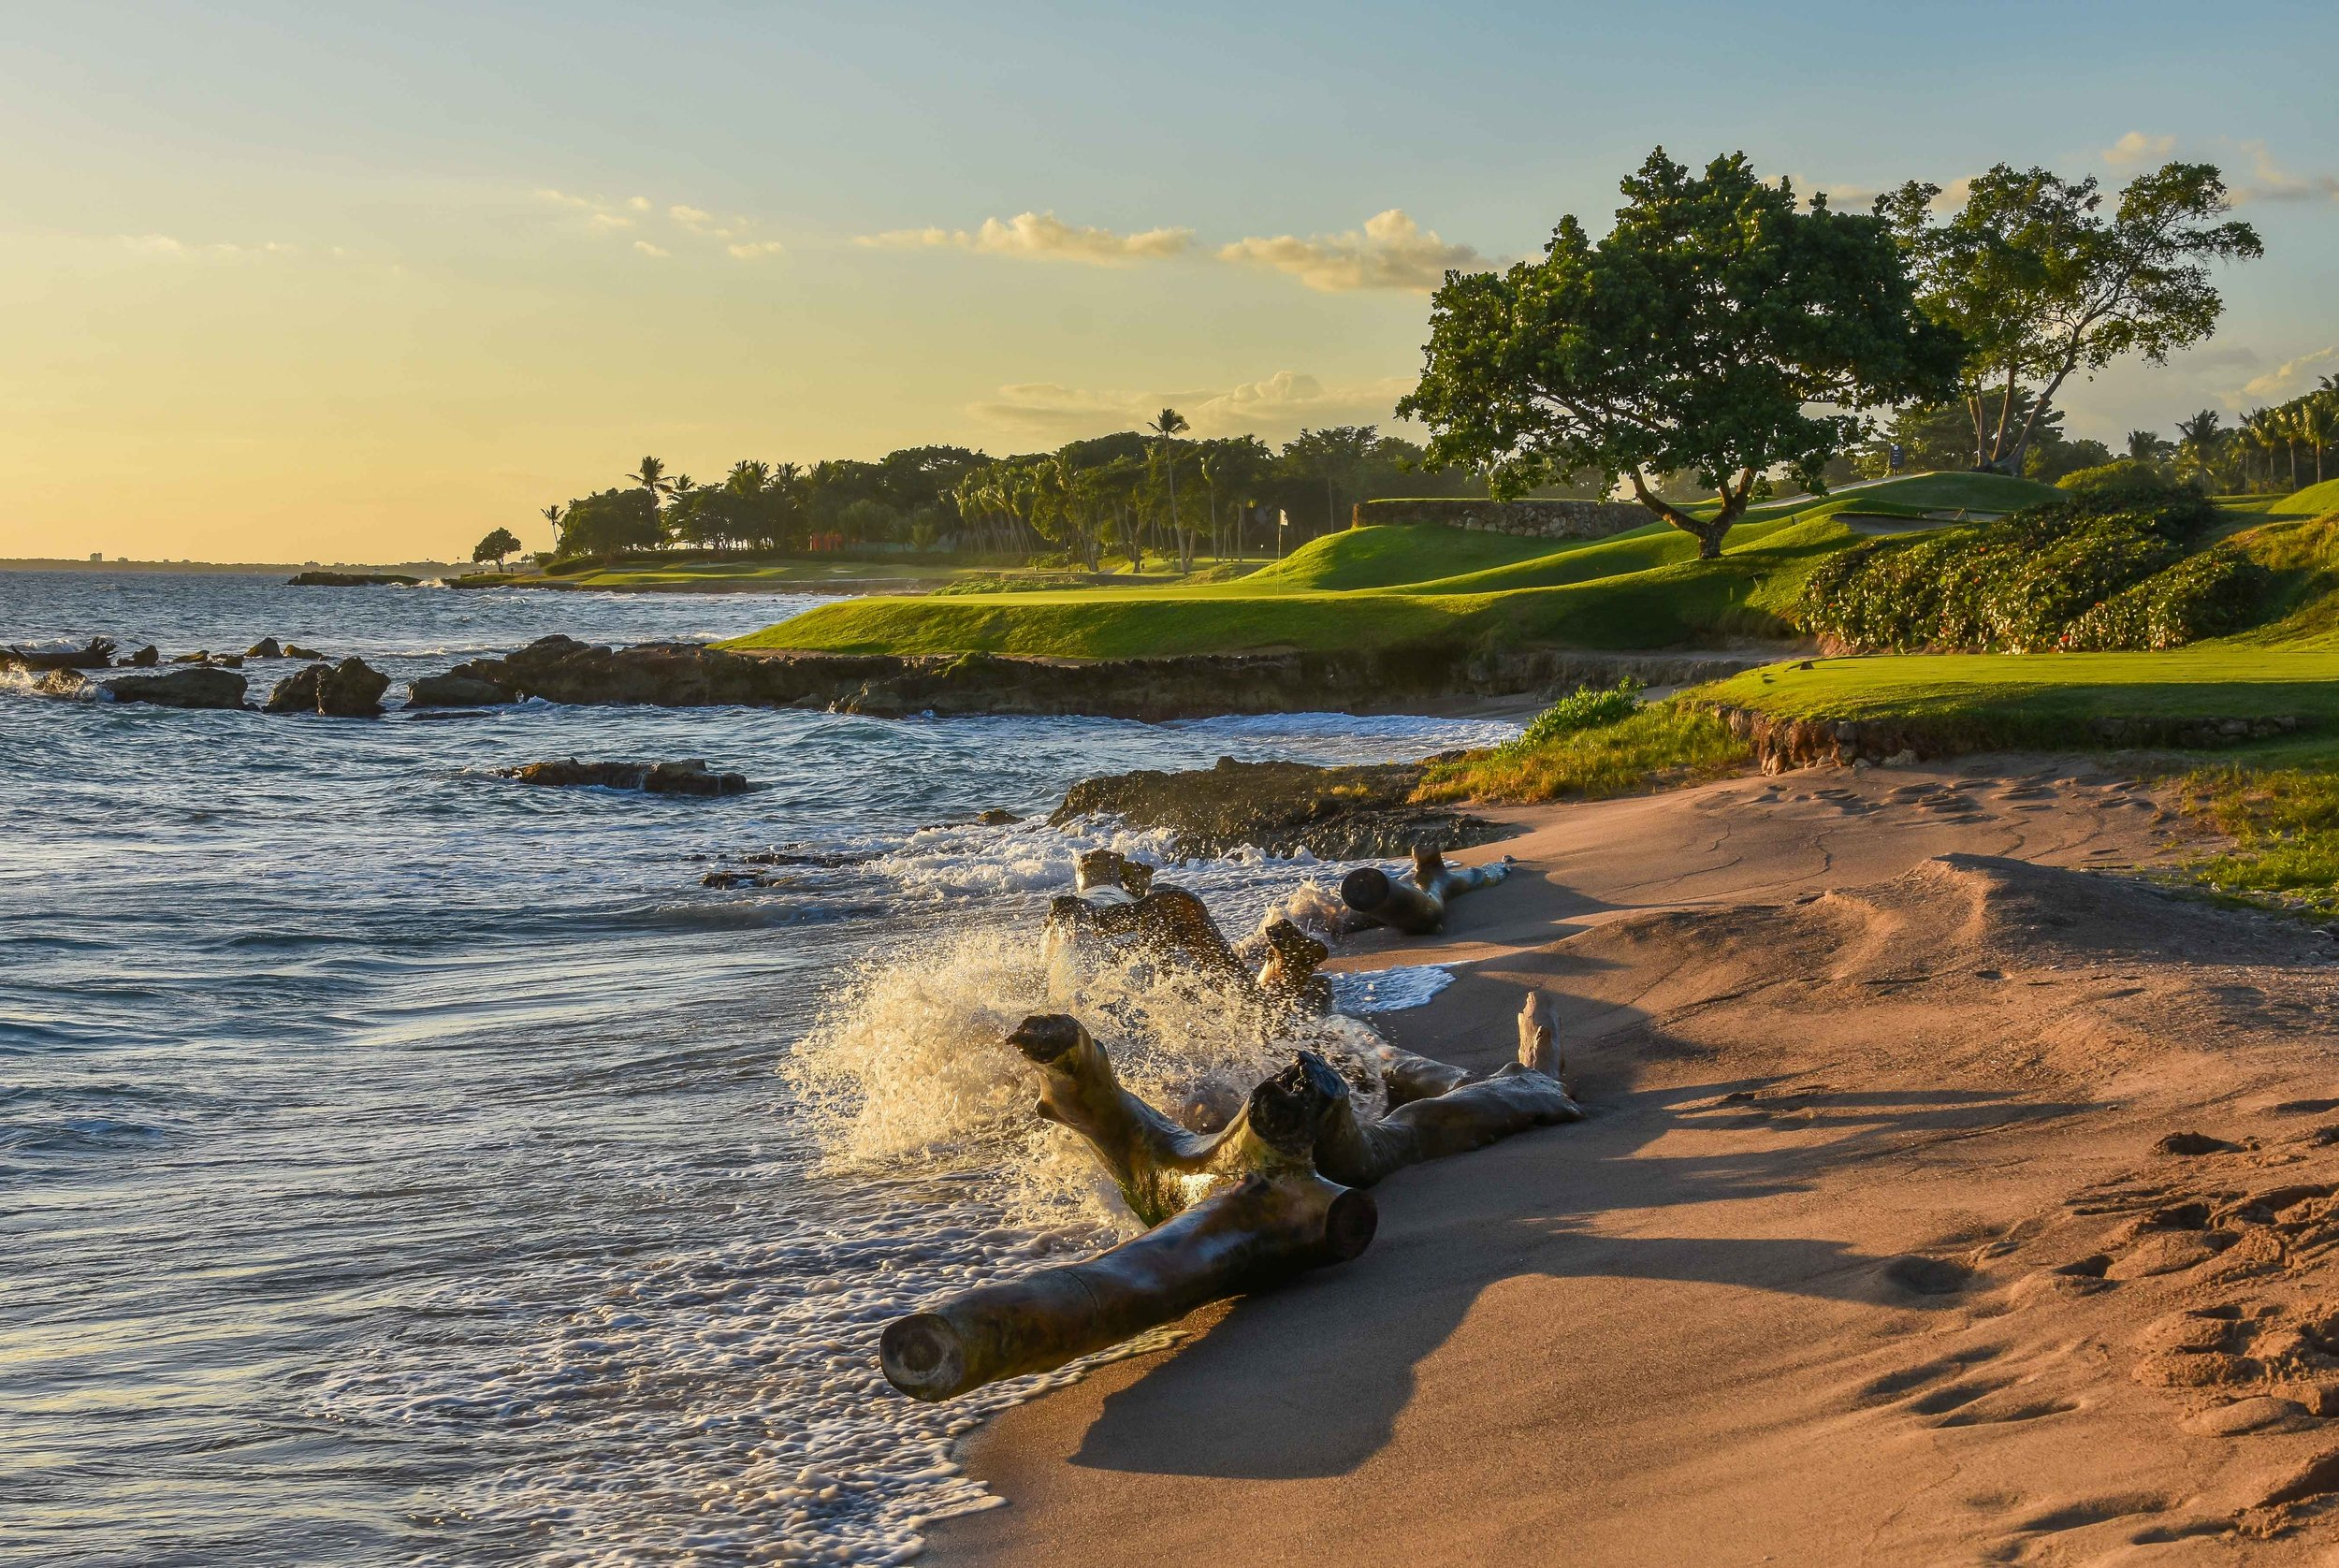 The beach in front of the 5th hole receives a 11/10 beach rating from pjkoenig.com.